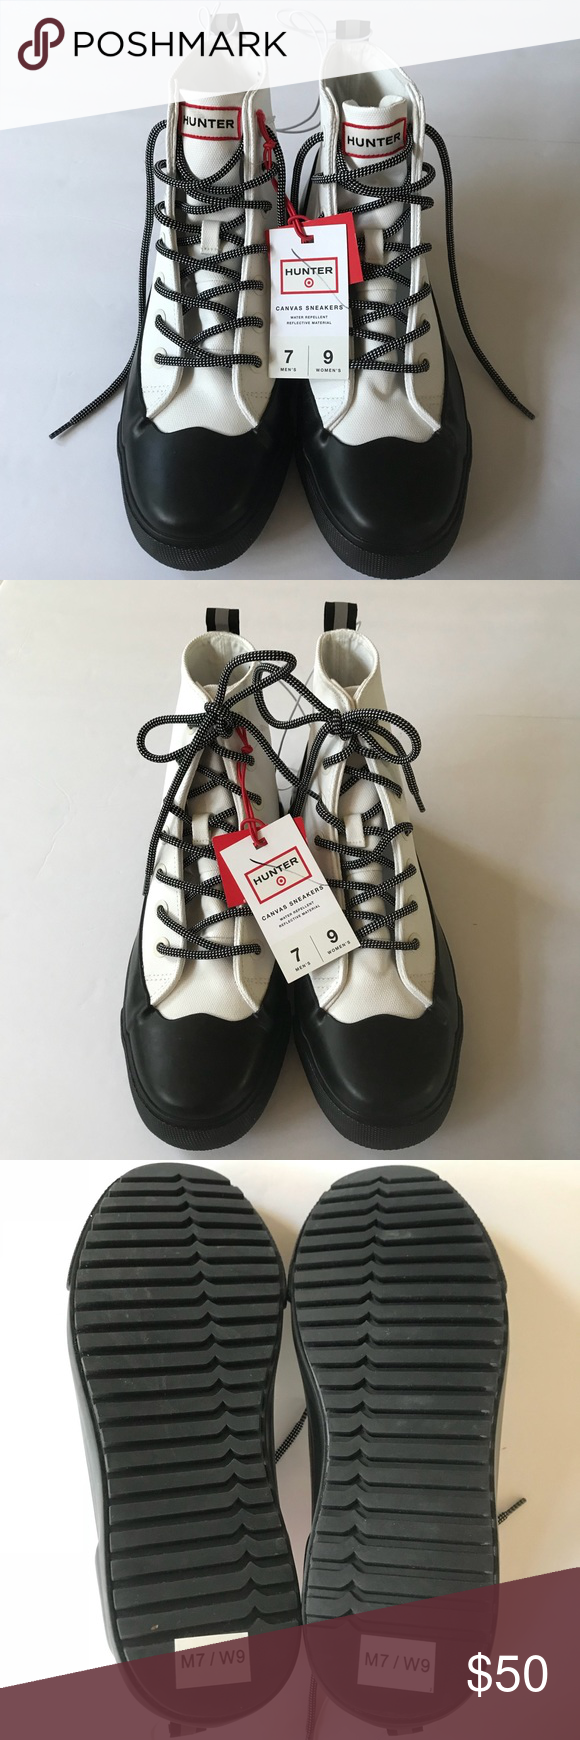 1ea1b40cfb9 ... Sneakers 9 Hunter for Target Dipped Canvas High Top Sneakers Lace Up  Water Repellant Flat Rubber Soles Unisex   Women s 9